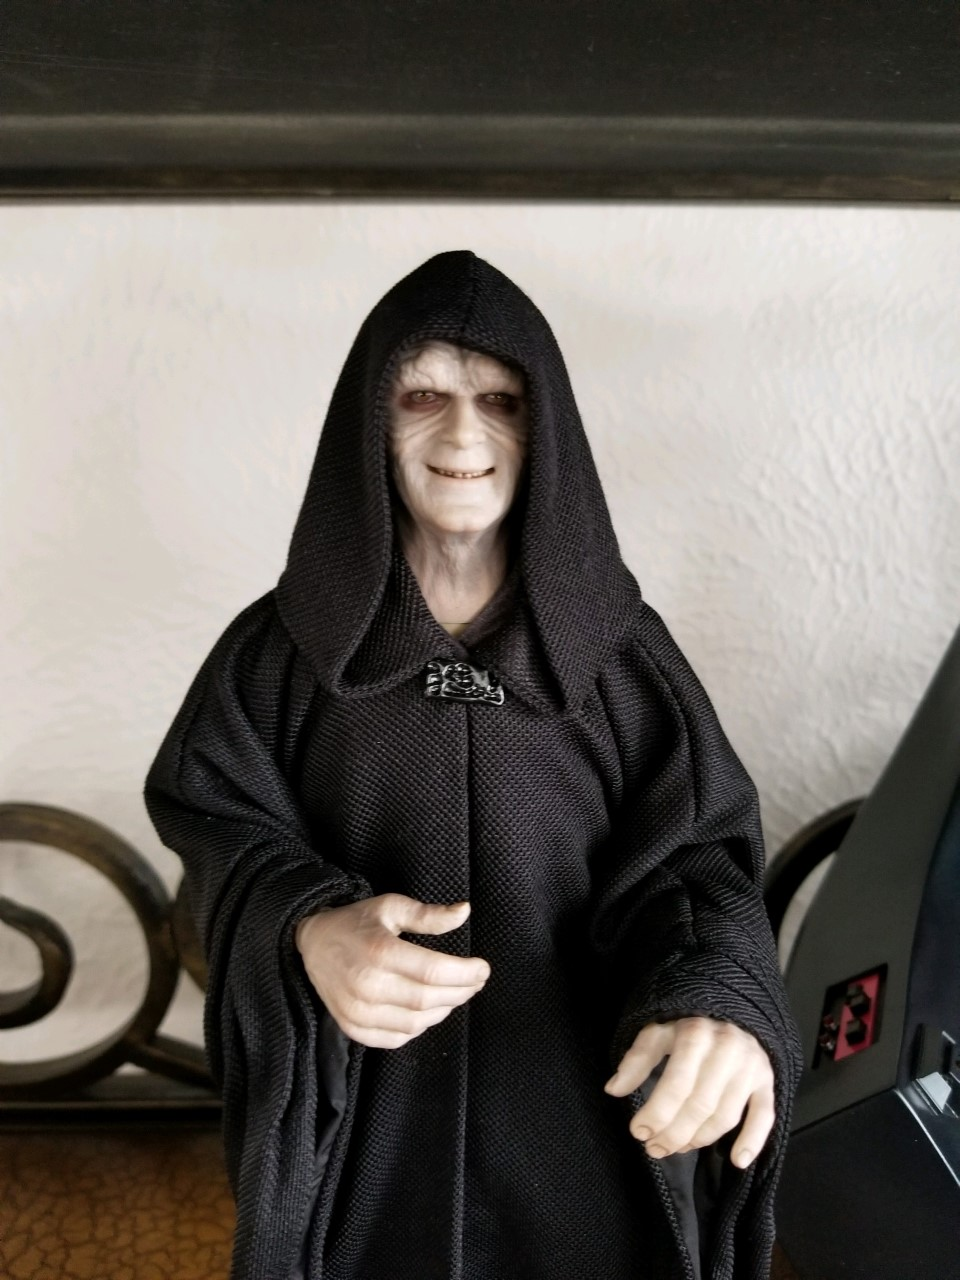 rotj - Hot Toys Star Wars Emperor Palpatine (Deluxe) Review - Page 2 Thumbn12